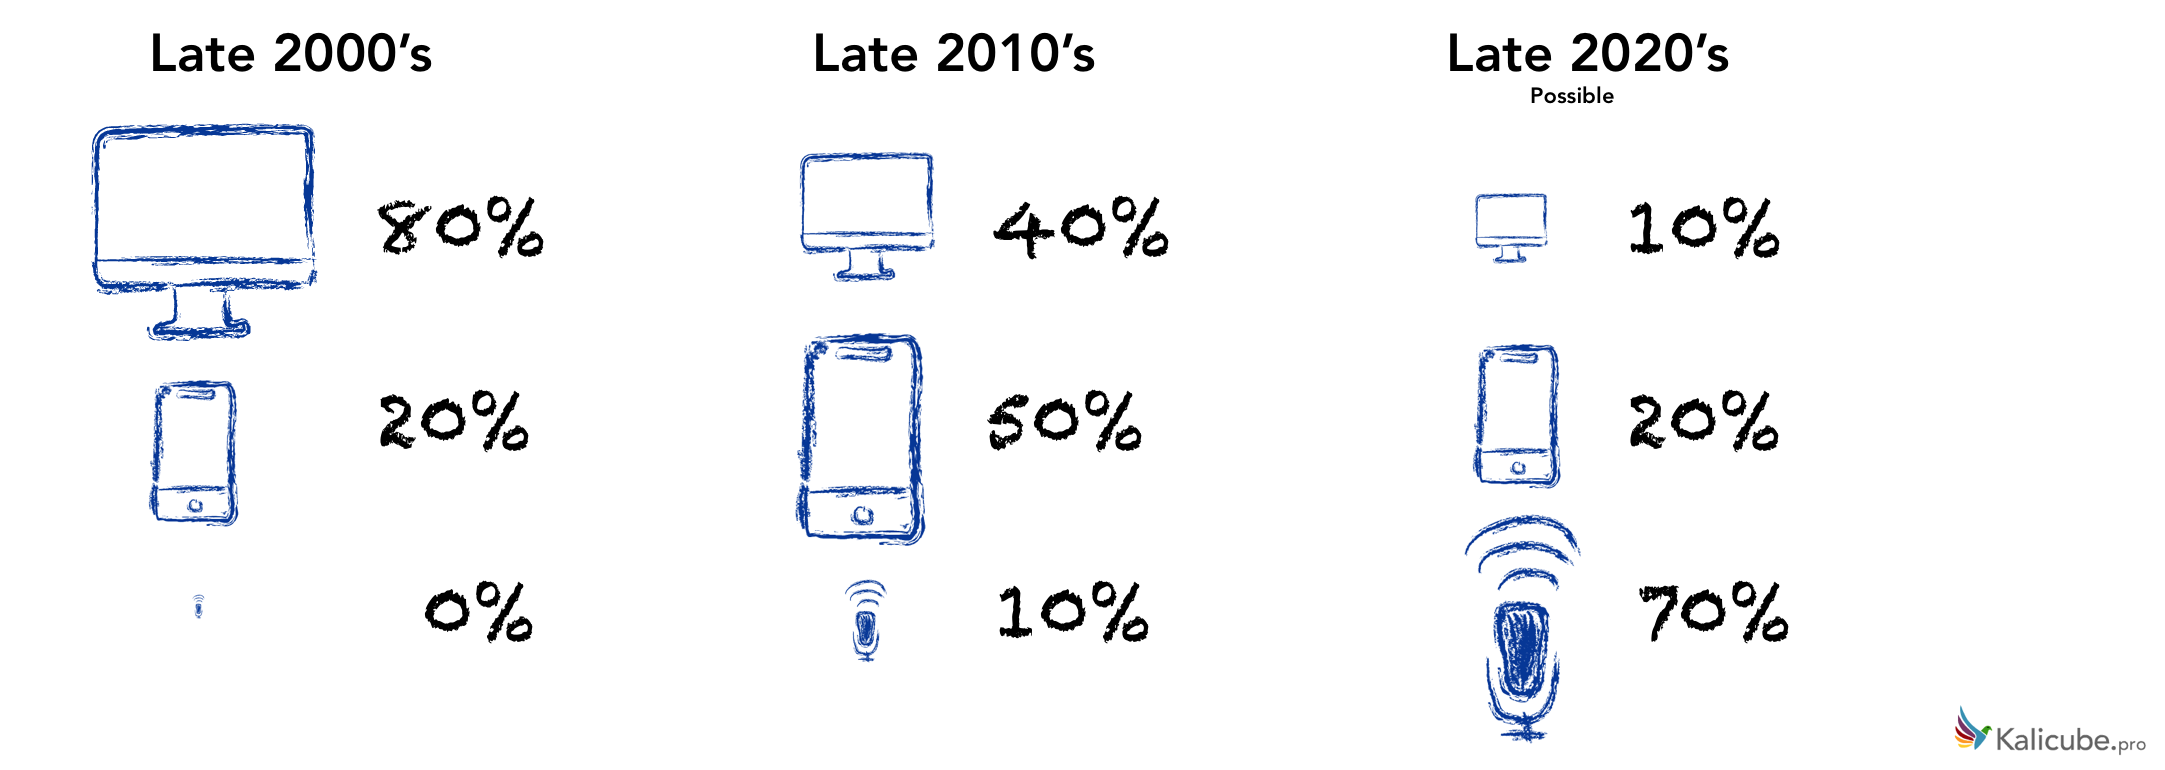 Market Share By Device 2000 to 2028